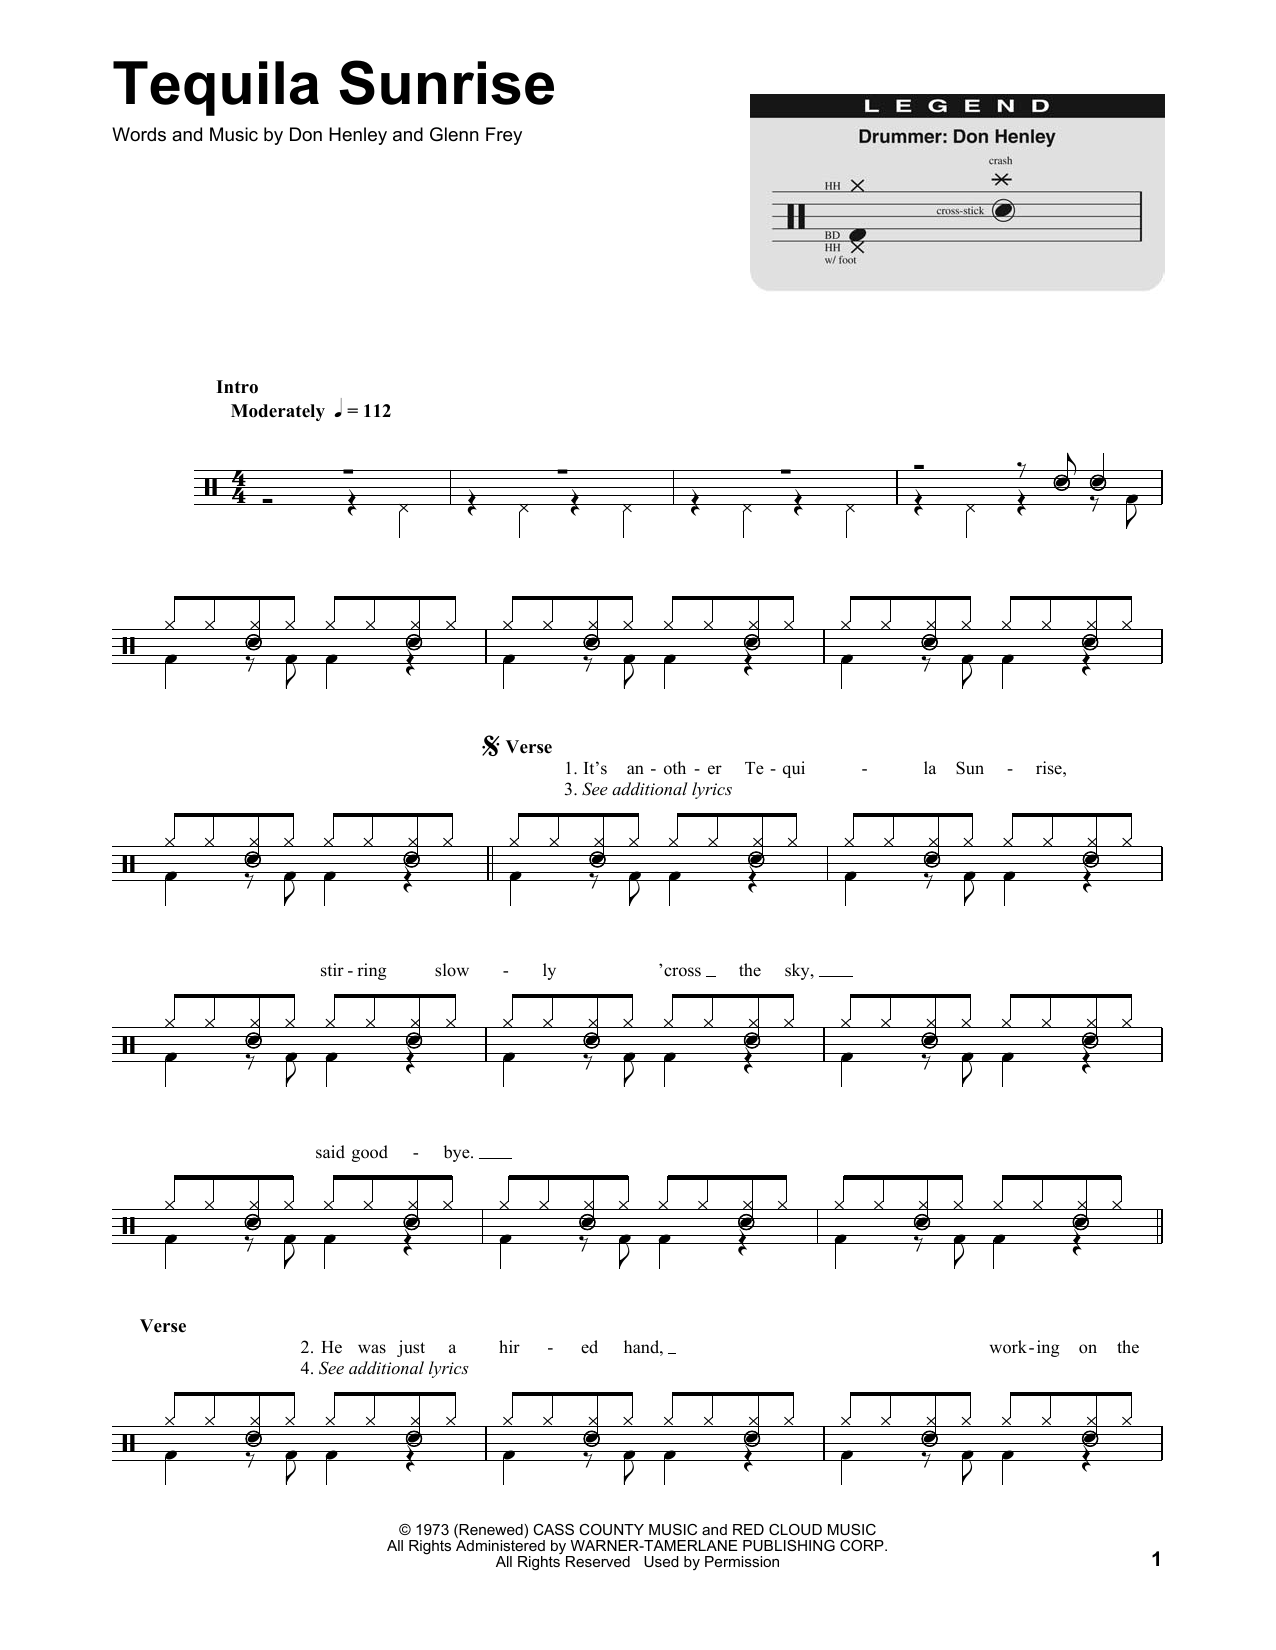 tequila sunrise chords